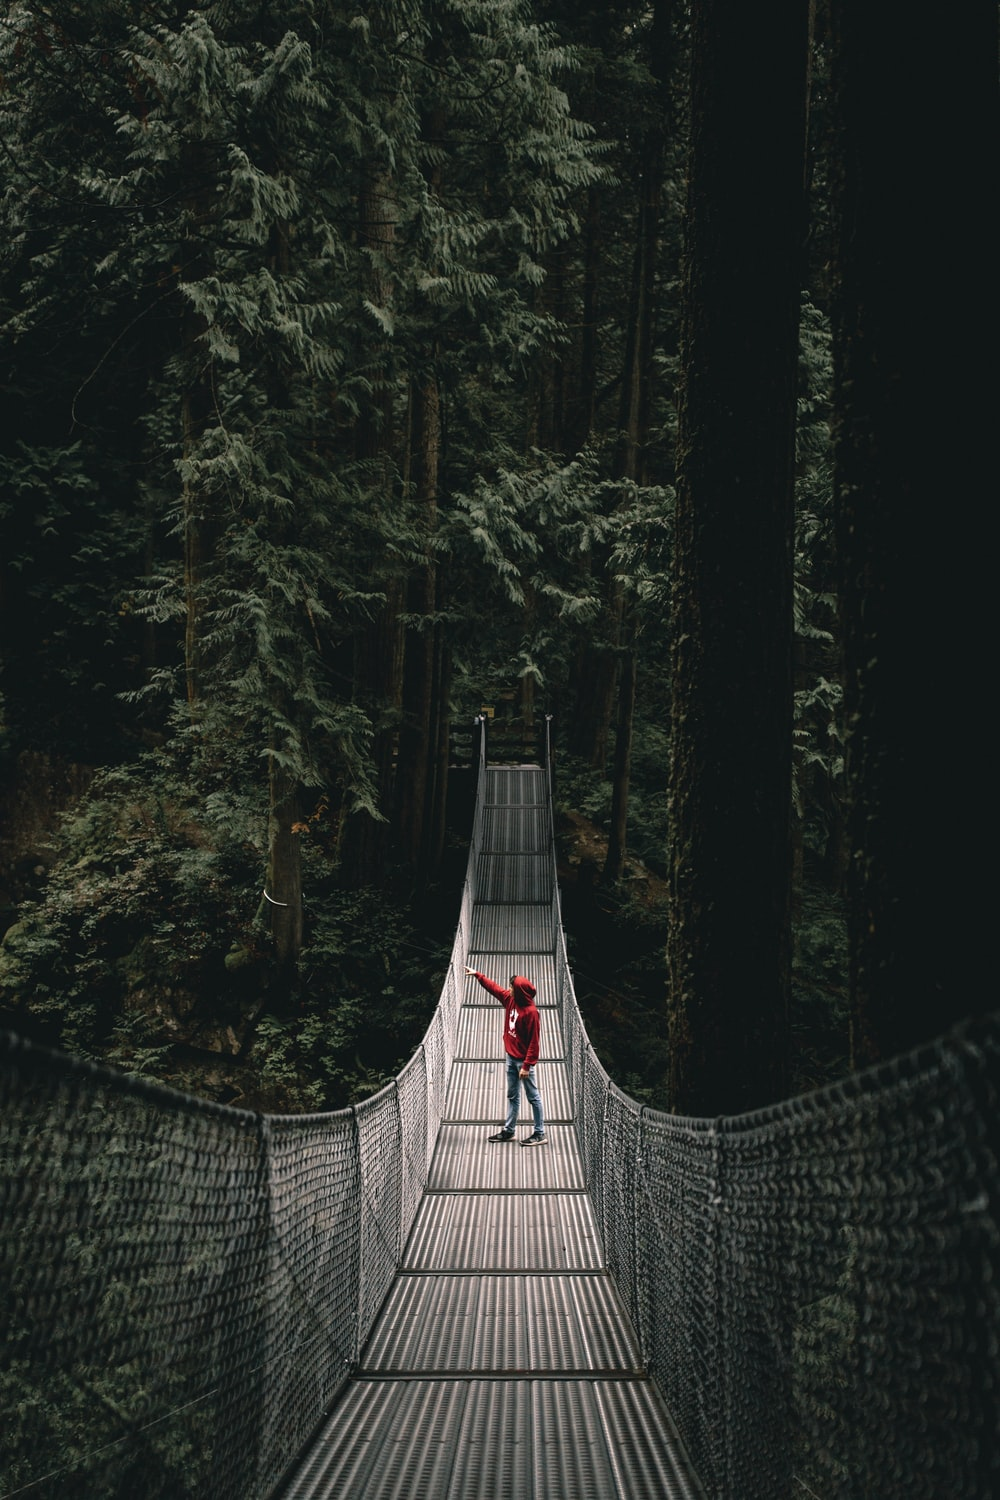 person wearing red hoodie standing on the hanging bridge